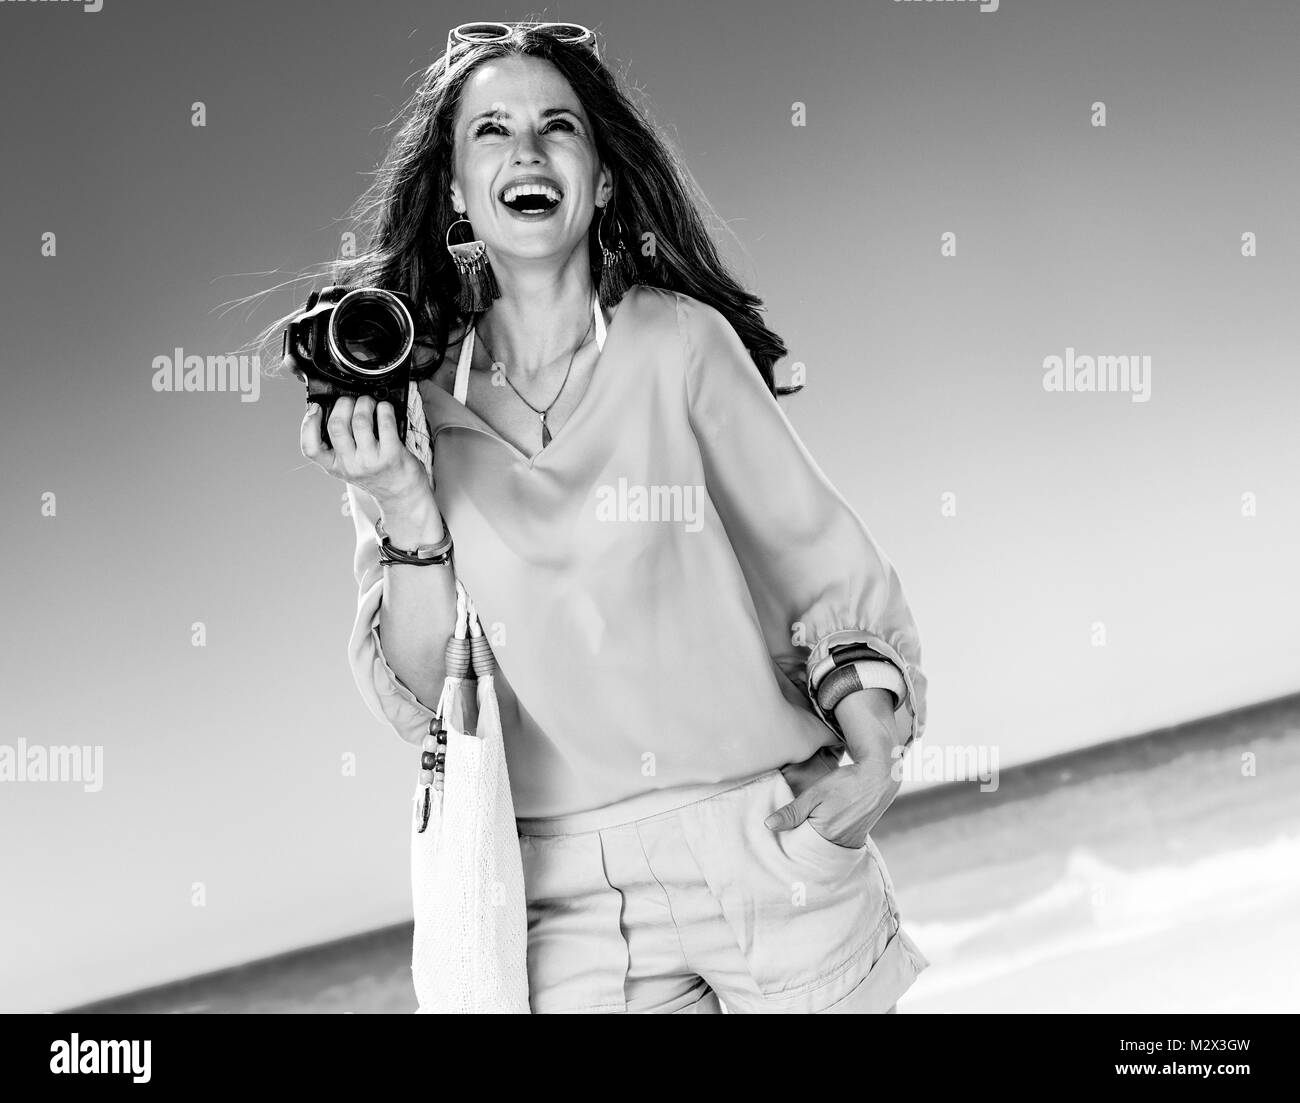 Perfect summer. smiling young woman in shorts and yellow blouse with white beach bag on the beach with digital SLR - Stock Image